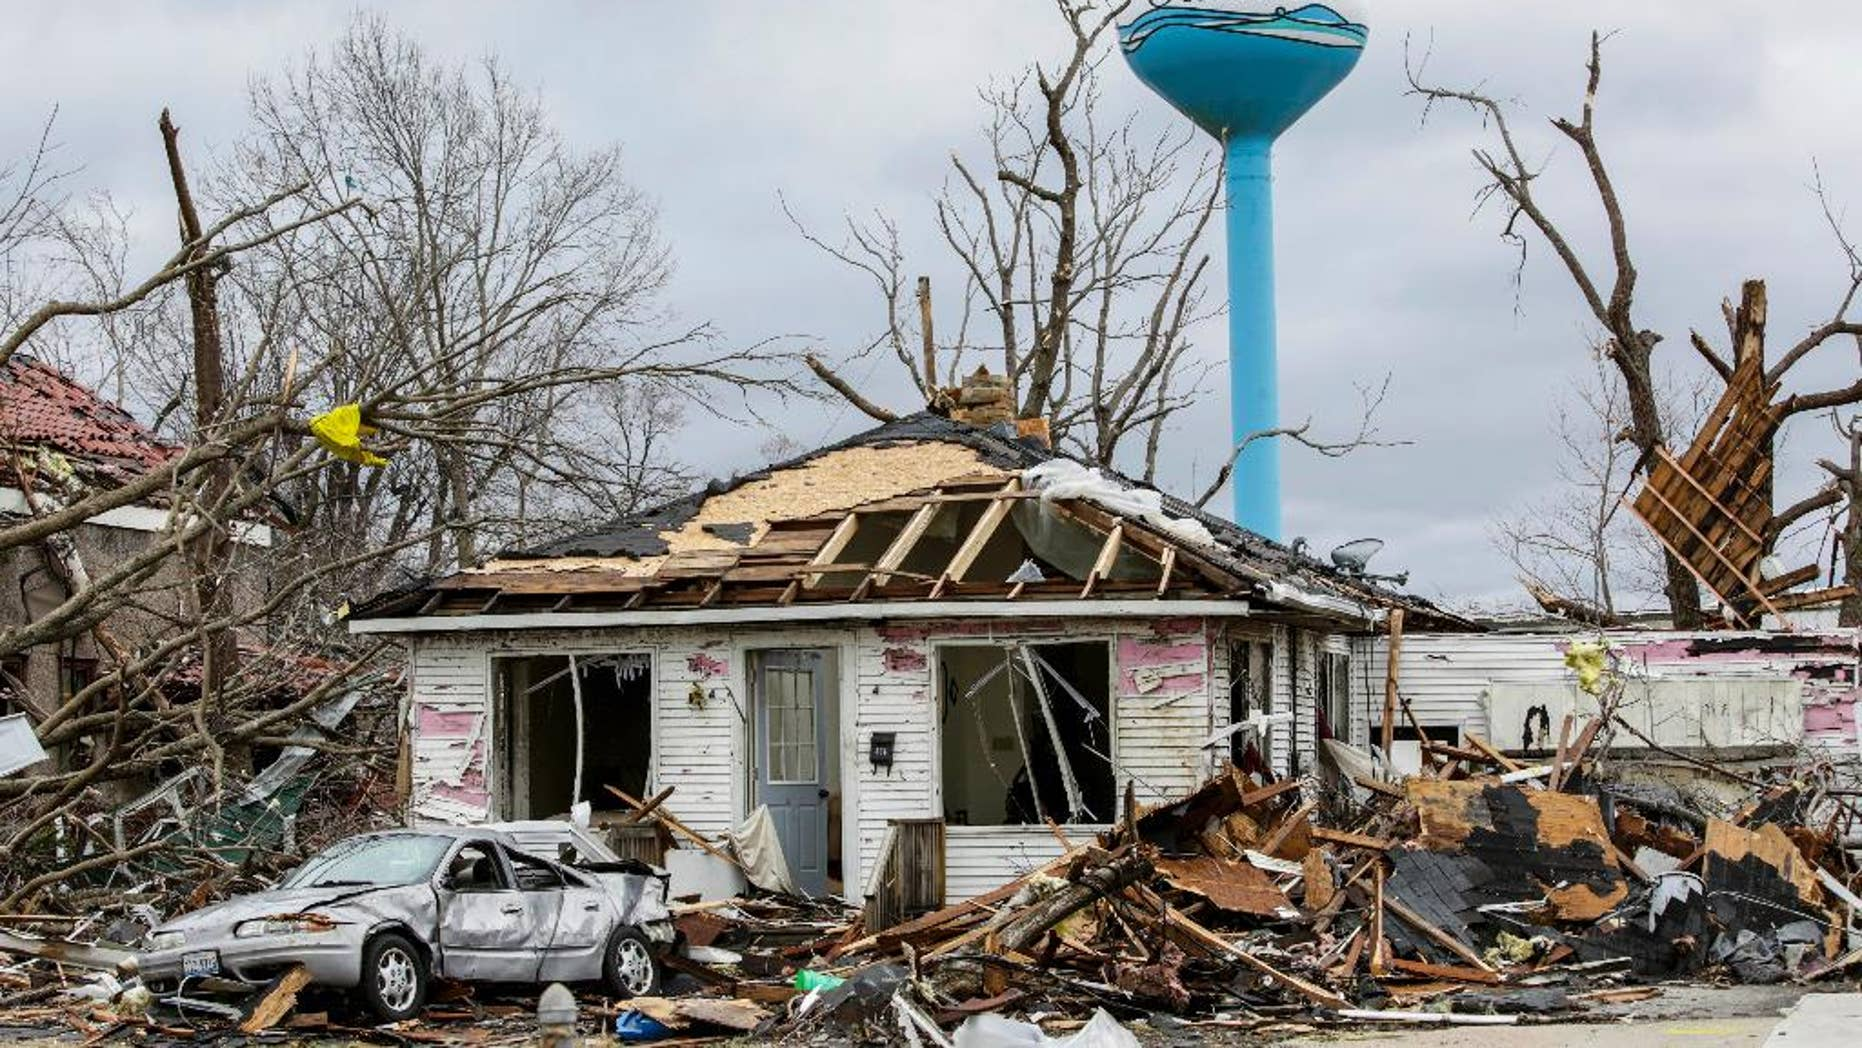 """Debbie Loughridge's damaged home and car are seen among debris in Naplate, Ill., Wednesday, March 1, 2017. Loughridge and her son rode out the storm in the bathtub. """"All I heard was the wind and the breaking glass. Like an explosion of glass,"""" she said. In the small community of Naplate, next to Ottawa, about a quarter of the roughly 200 homes were damaged, Fire Chief John Nevins said. (AP Photo/Teresa Crawford)"""